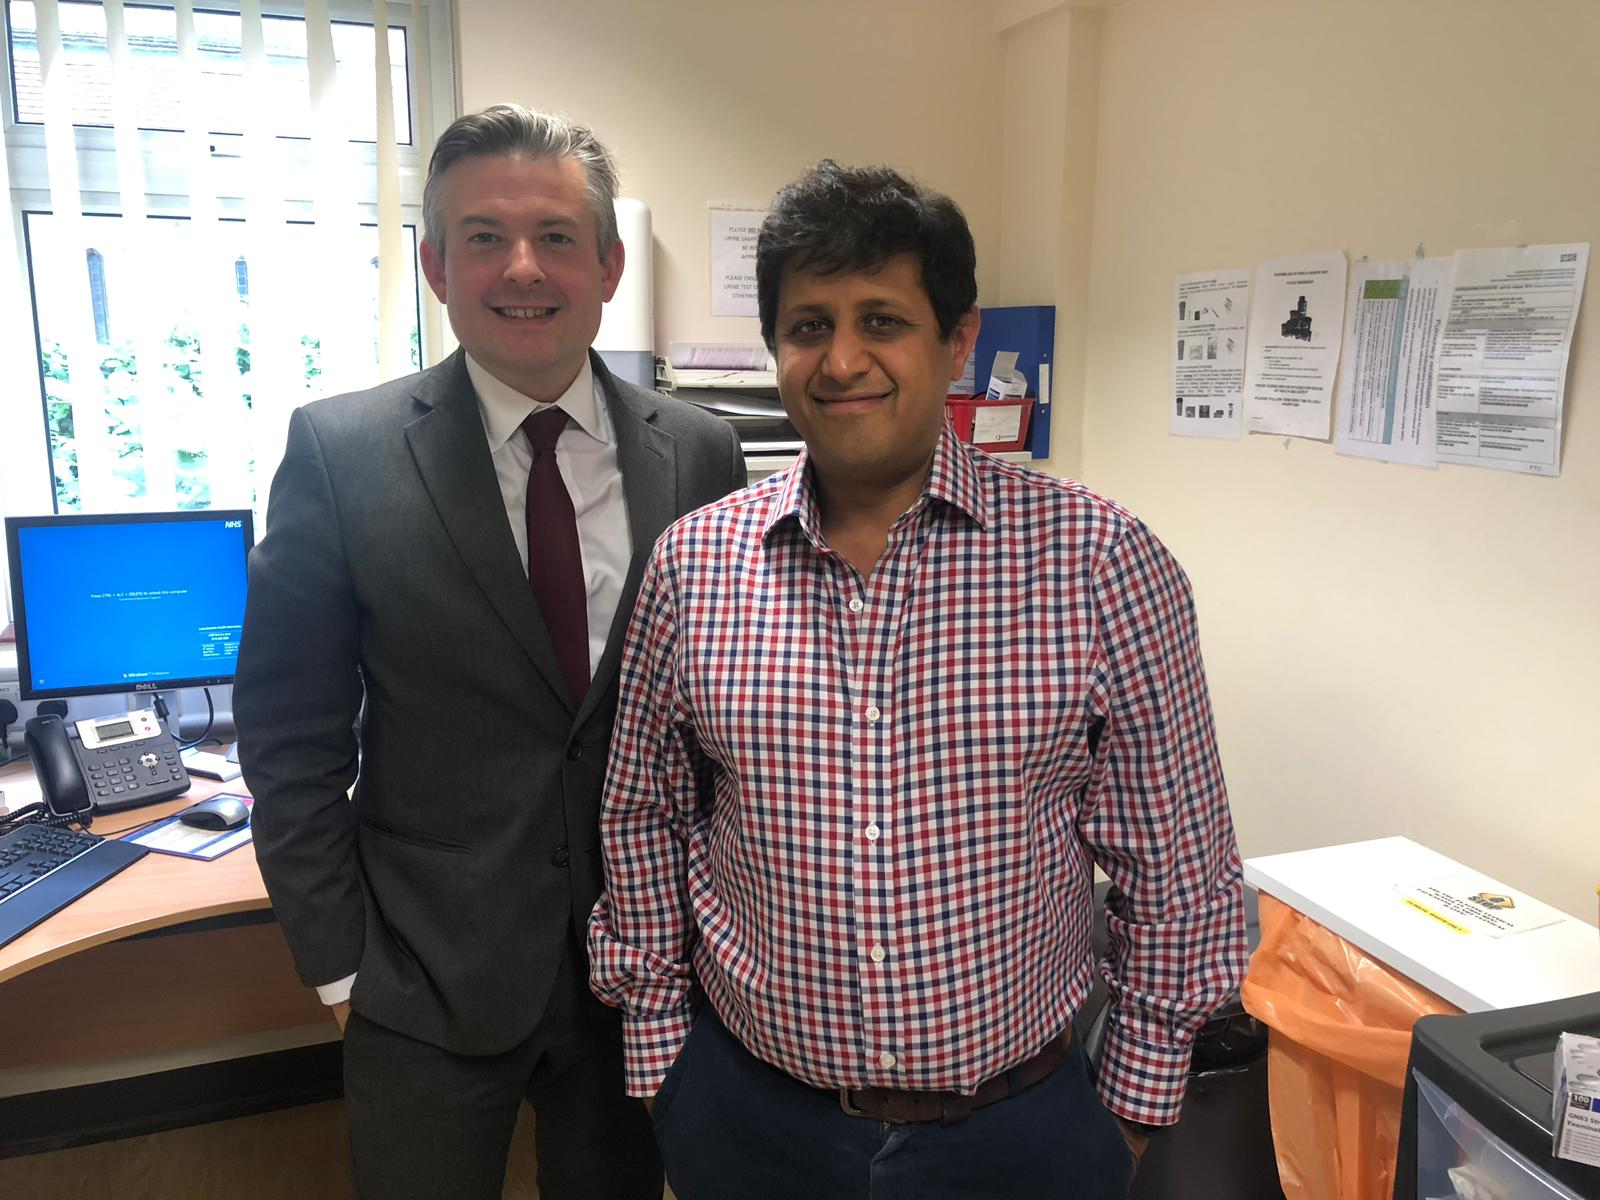 Jon met with Dr Rishabh Prasad at Springfield Road Surgery to discuss their innovative work using digital technology to support patient care - Friday June 21 2019